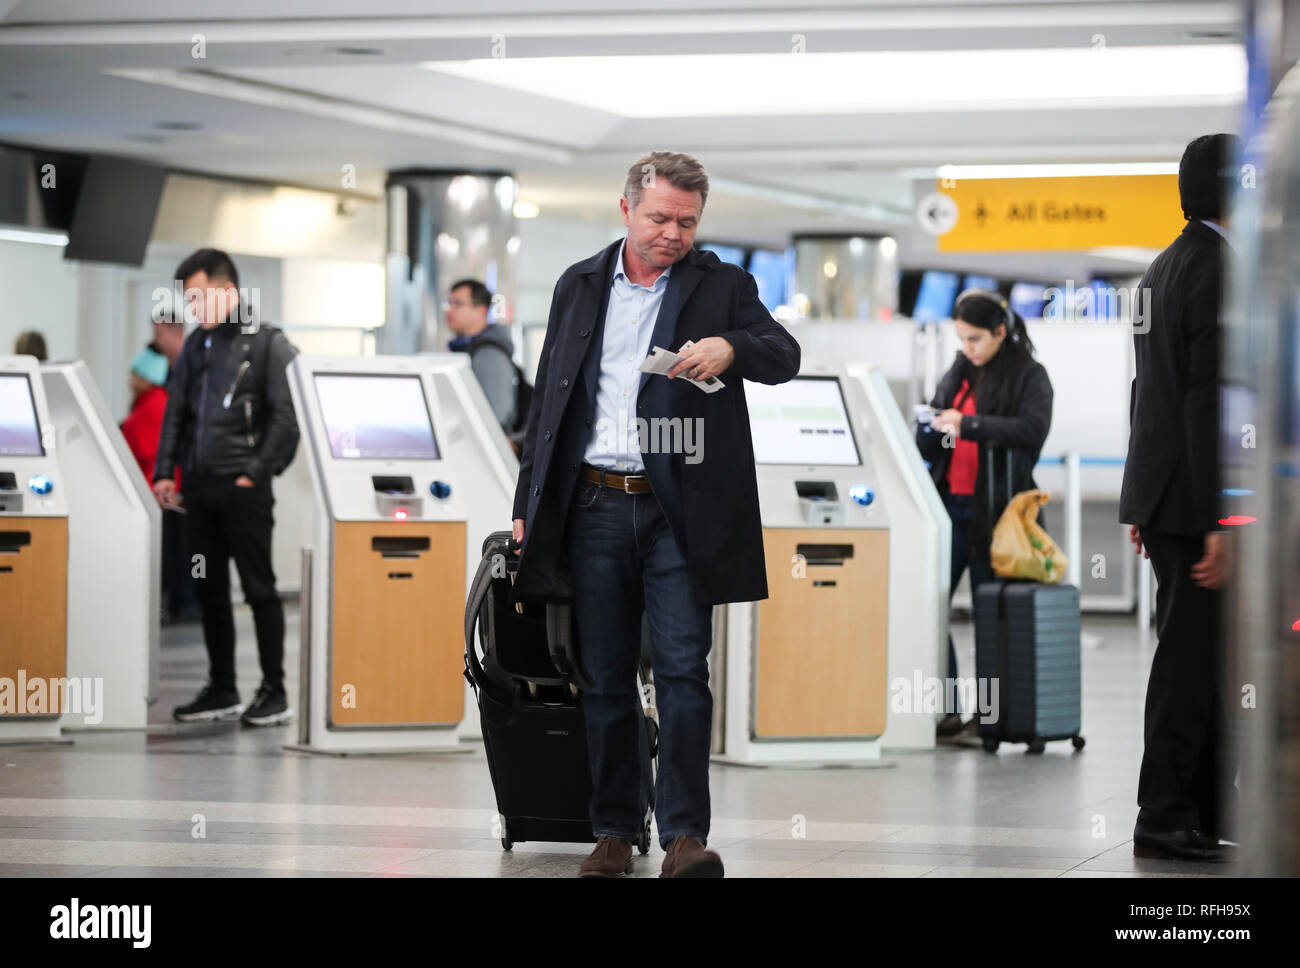 New York, USA. 25th Jan, 2019. A passenger checks his airline ticket at the LaGuardia Airport in New York, the United States, on Jan. 25, 2019. The U.S. Federal Aviation Administration on Friday halted flights bound for New York City's LaGuardia Airport, due to staff shortage caused by the historic government shutdown. Credit: Wang Ying/Xinhua/Alamy Live News - Stock Image